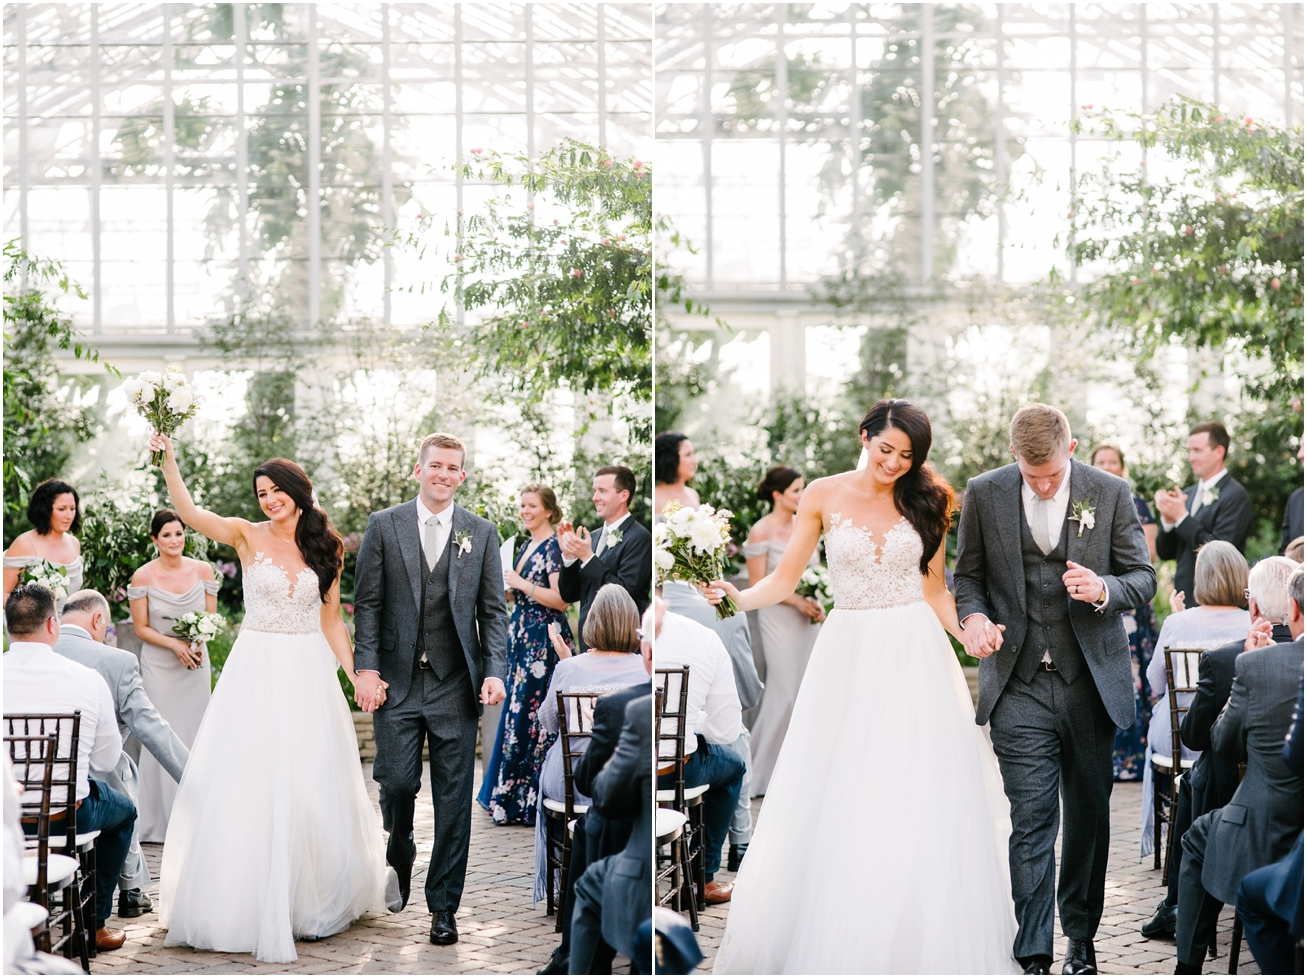 Garfield Park Conservatory Wedding.Michelle John Garfield Park Conservatory Chicago Wedding